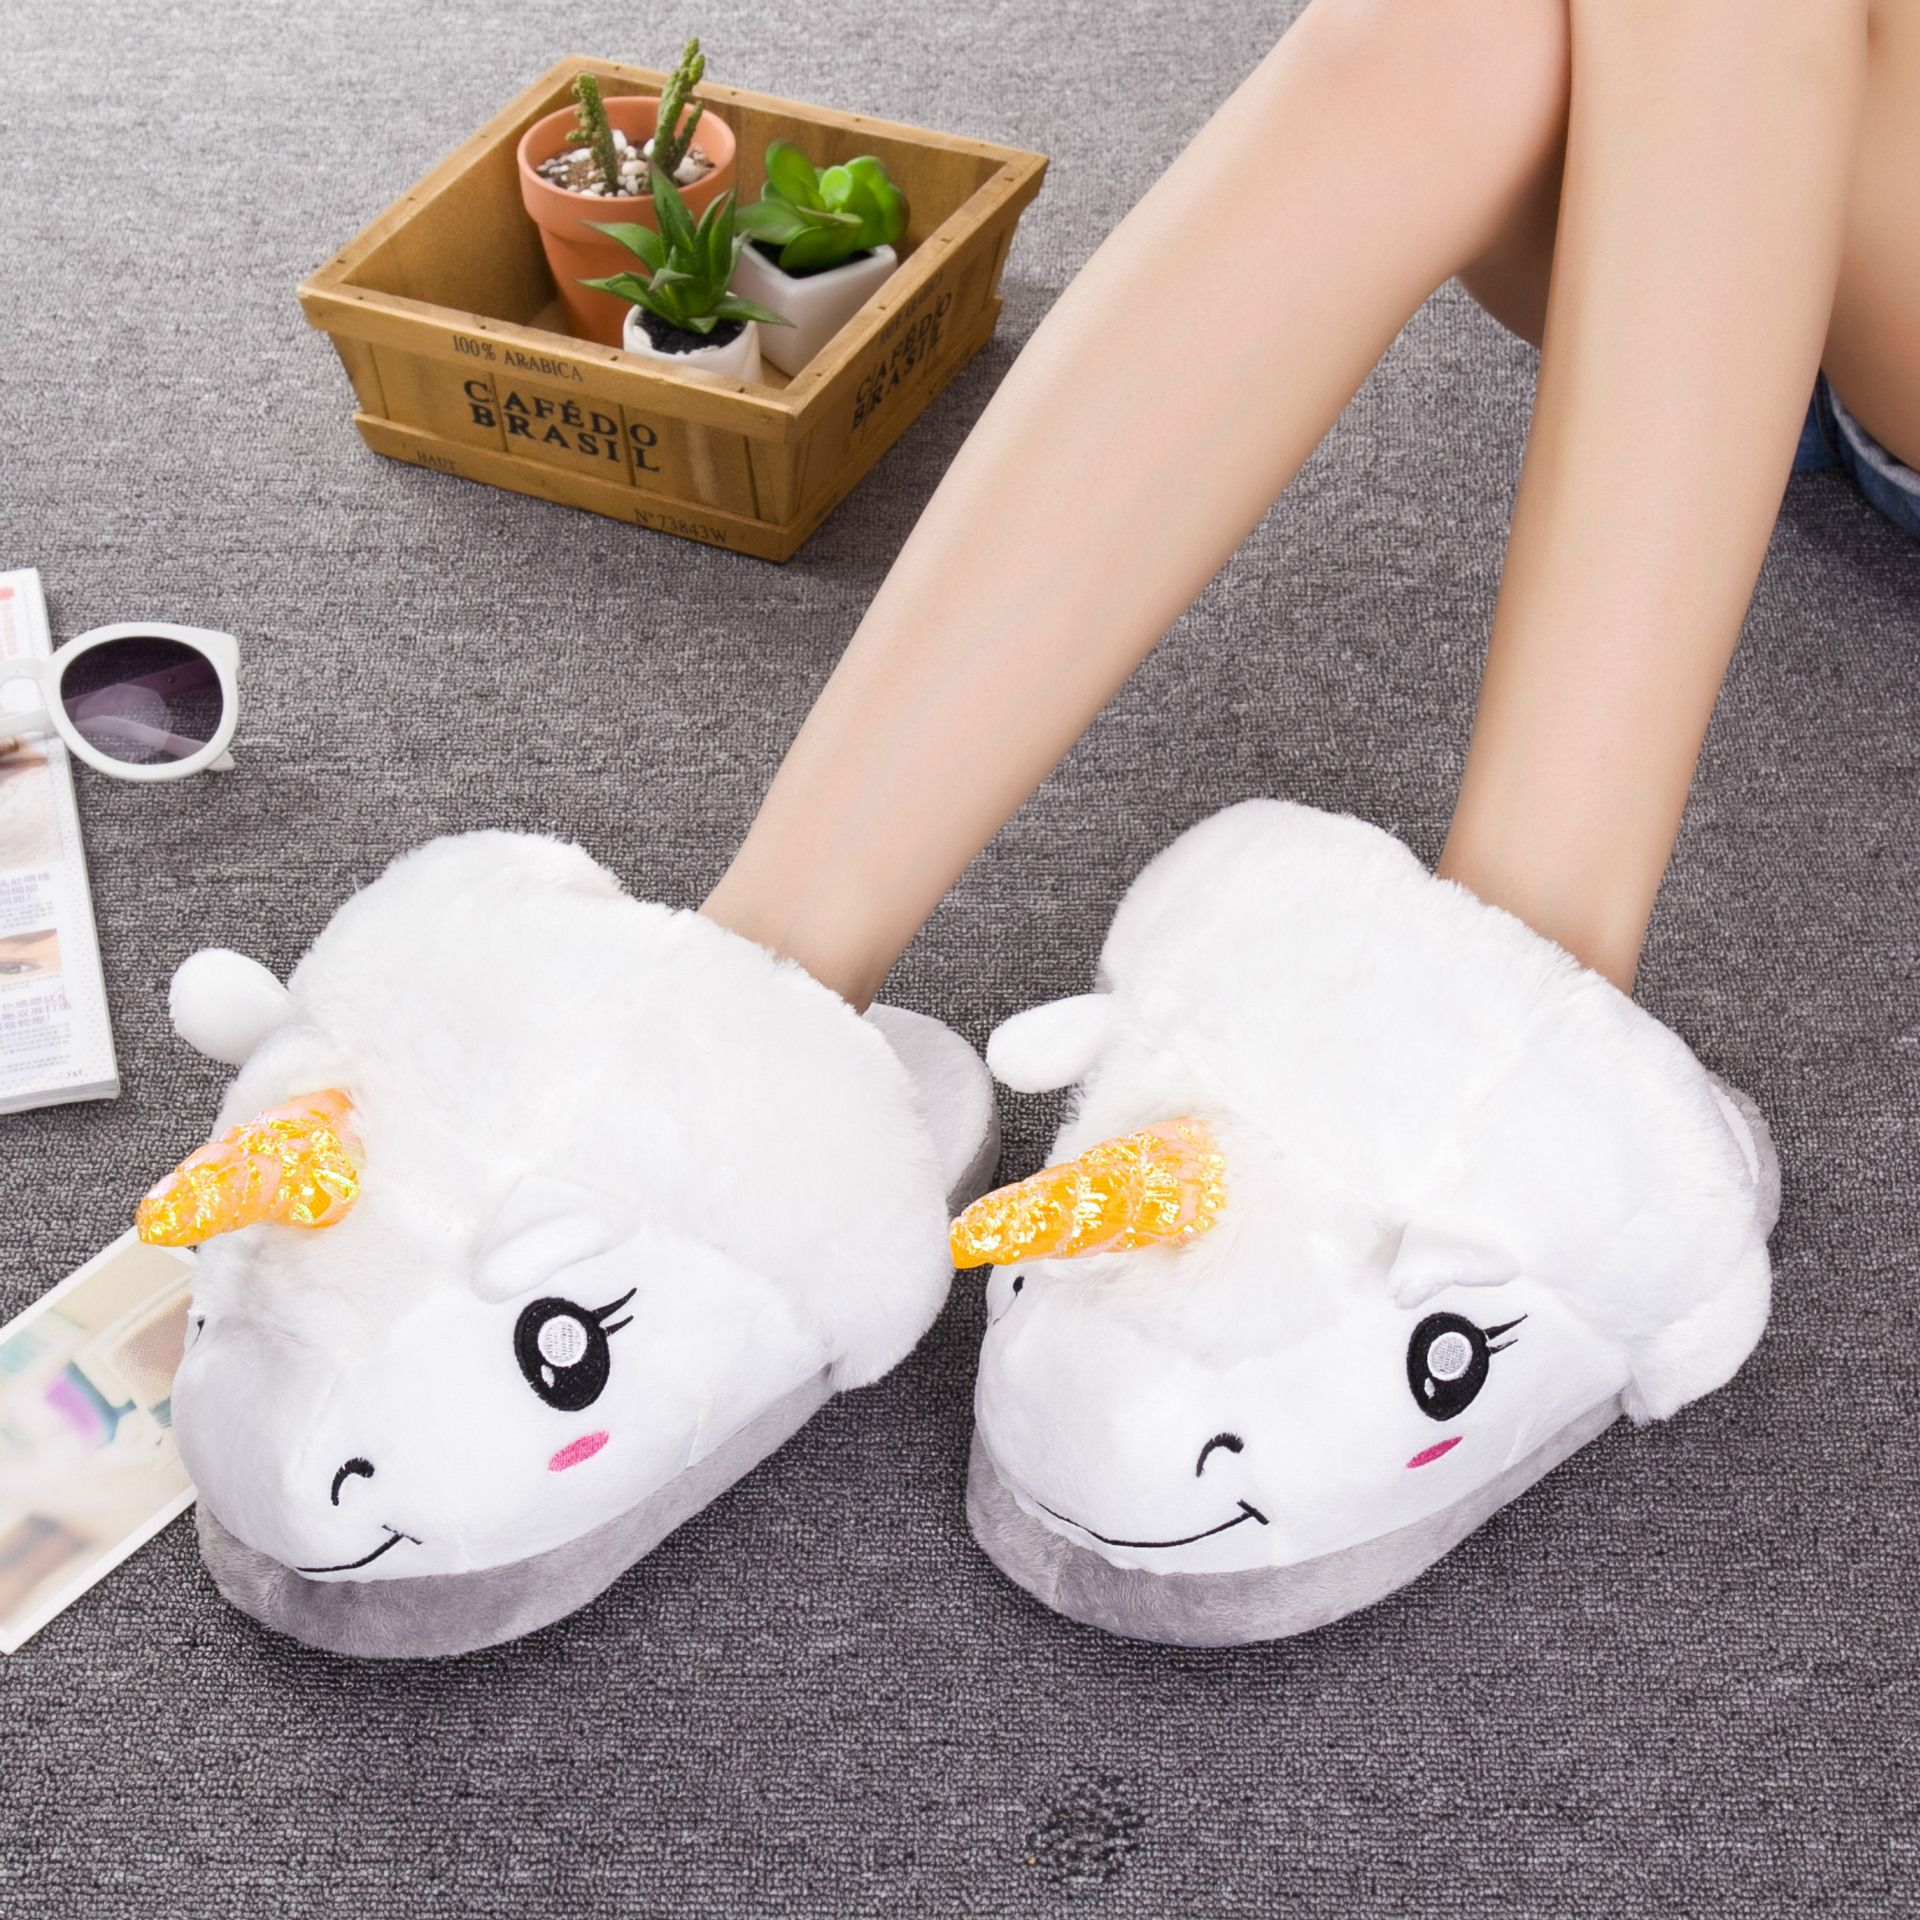 Creative Cute Warm Slippers Plush Golden Horn Unicorn Slippers For Grown Ups Adults Home Shoes Wish Unicorn Slippers Plush Unicorn Slippers Warm Slippers